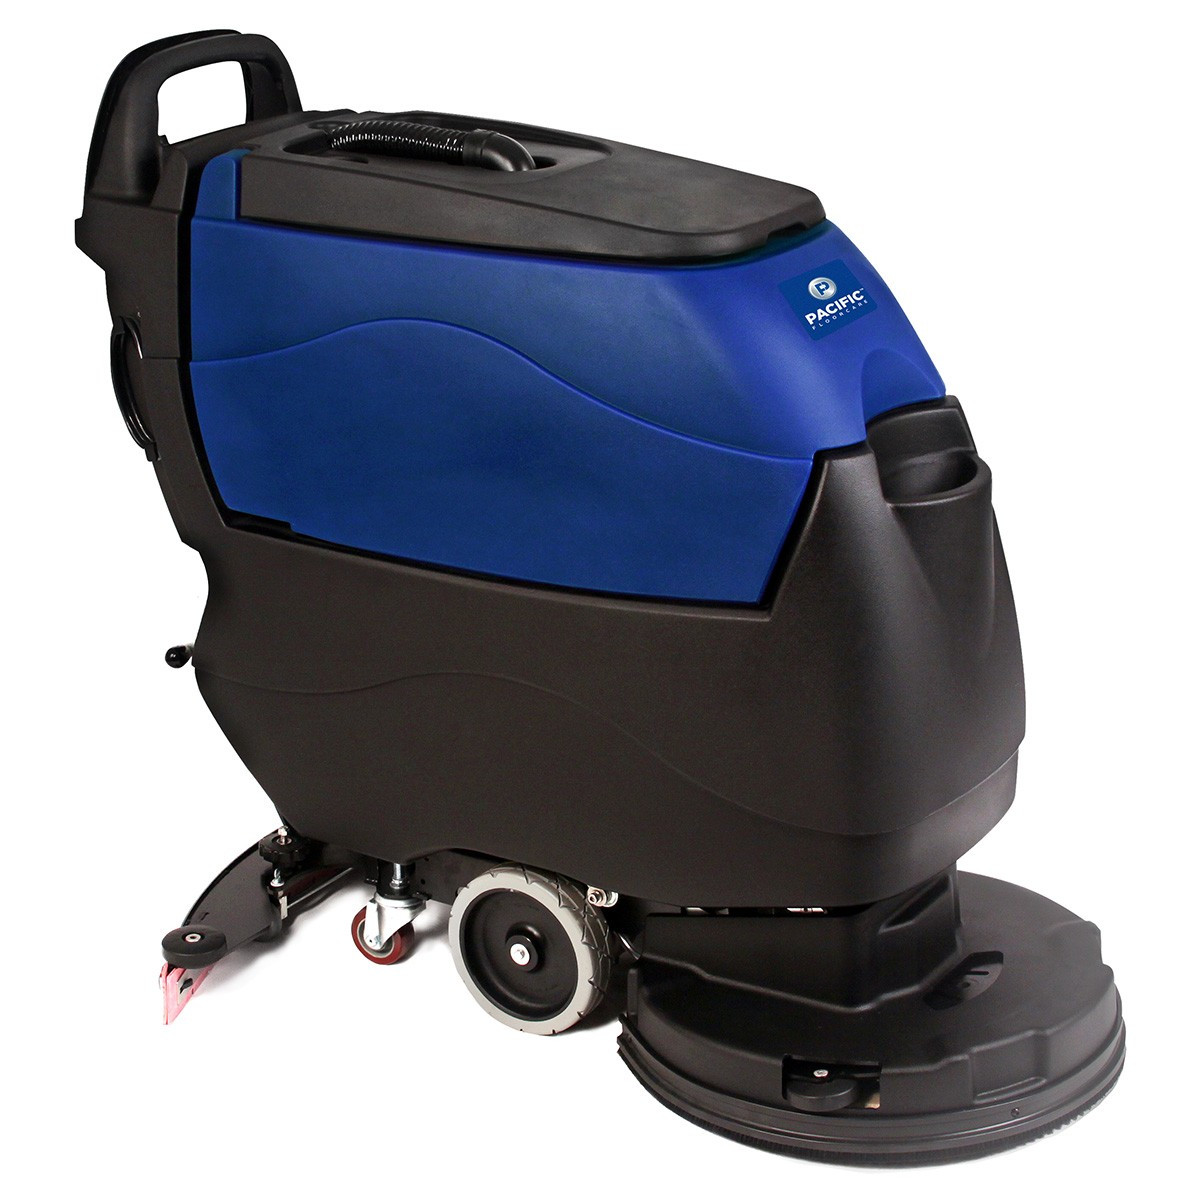 Pacific Floorcare 174 S 20 Automatic Floor Scrubber 20